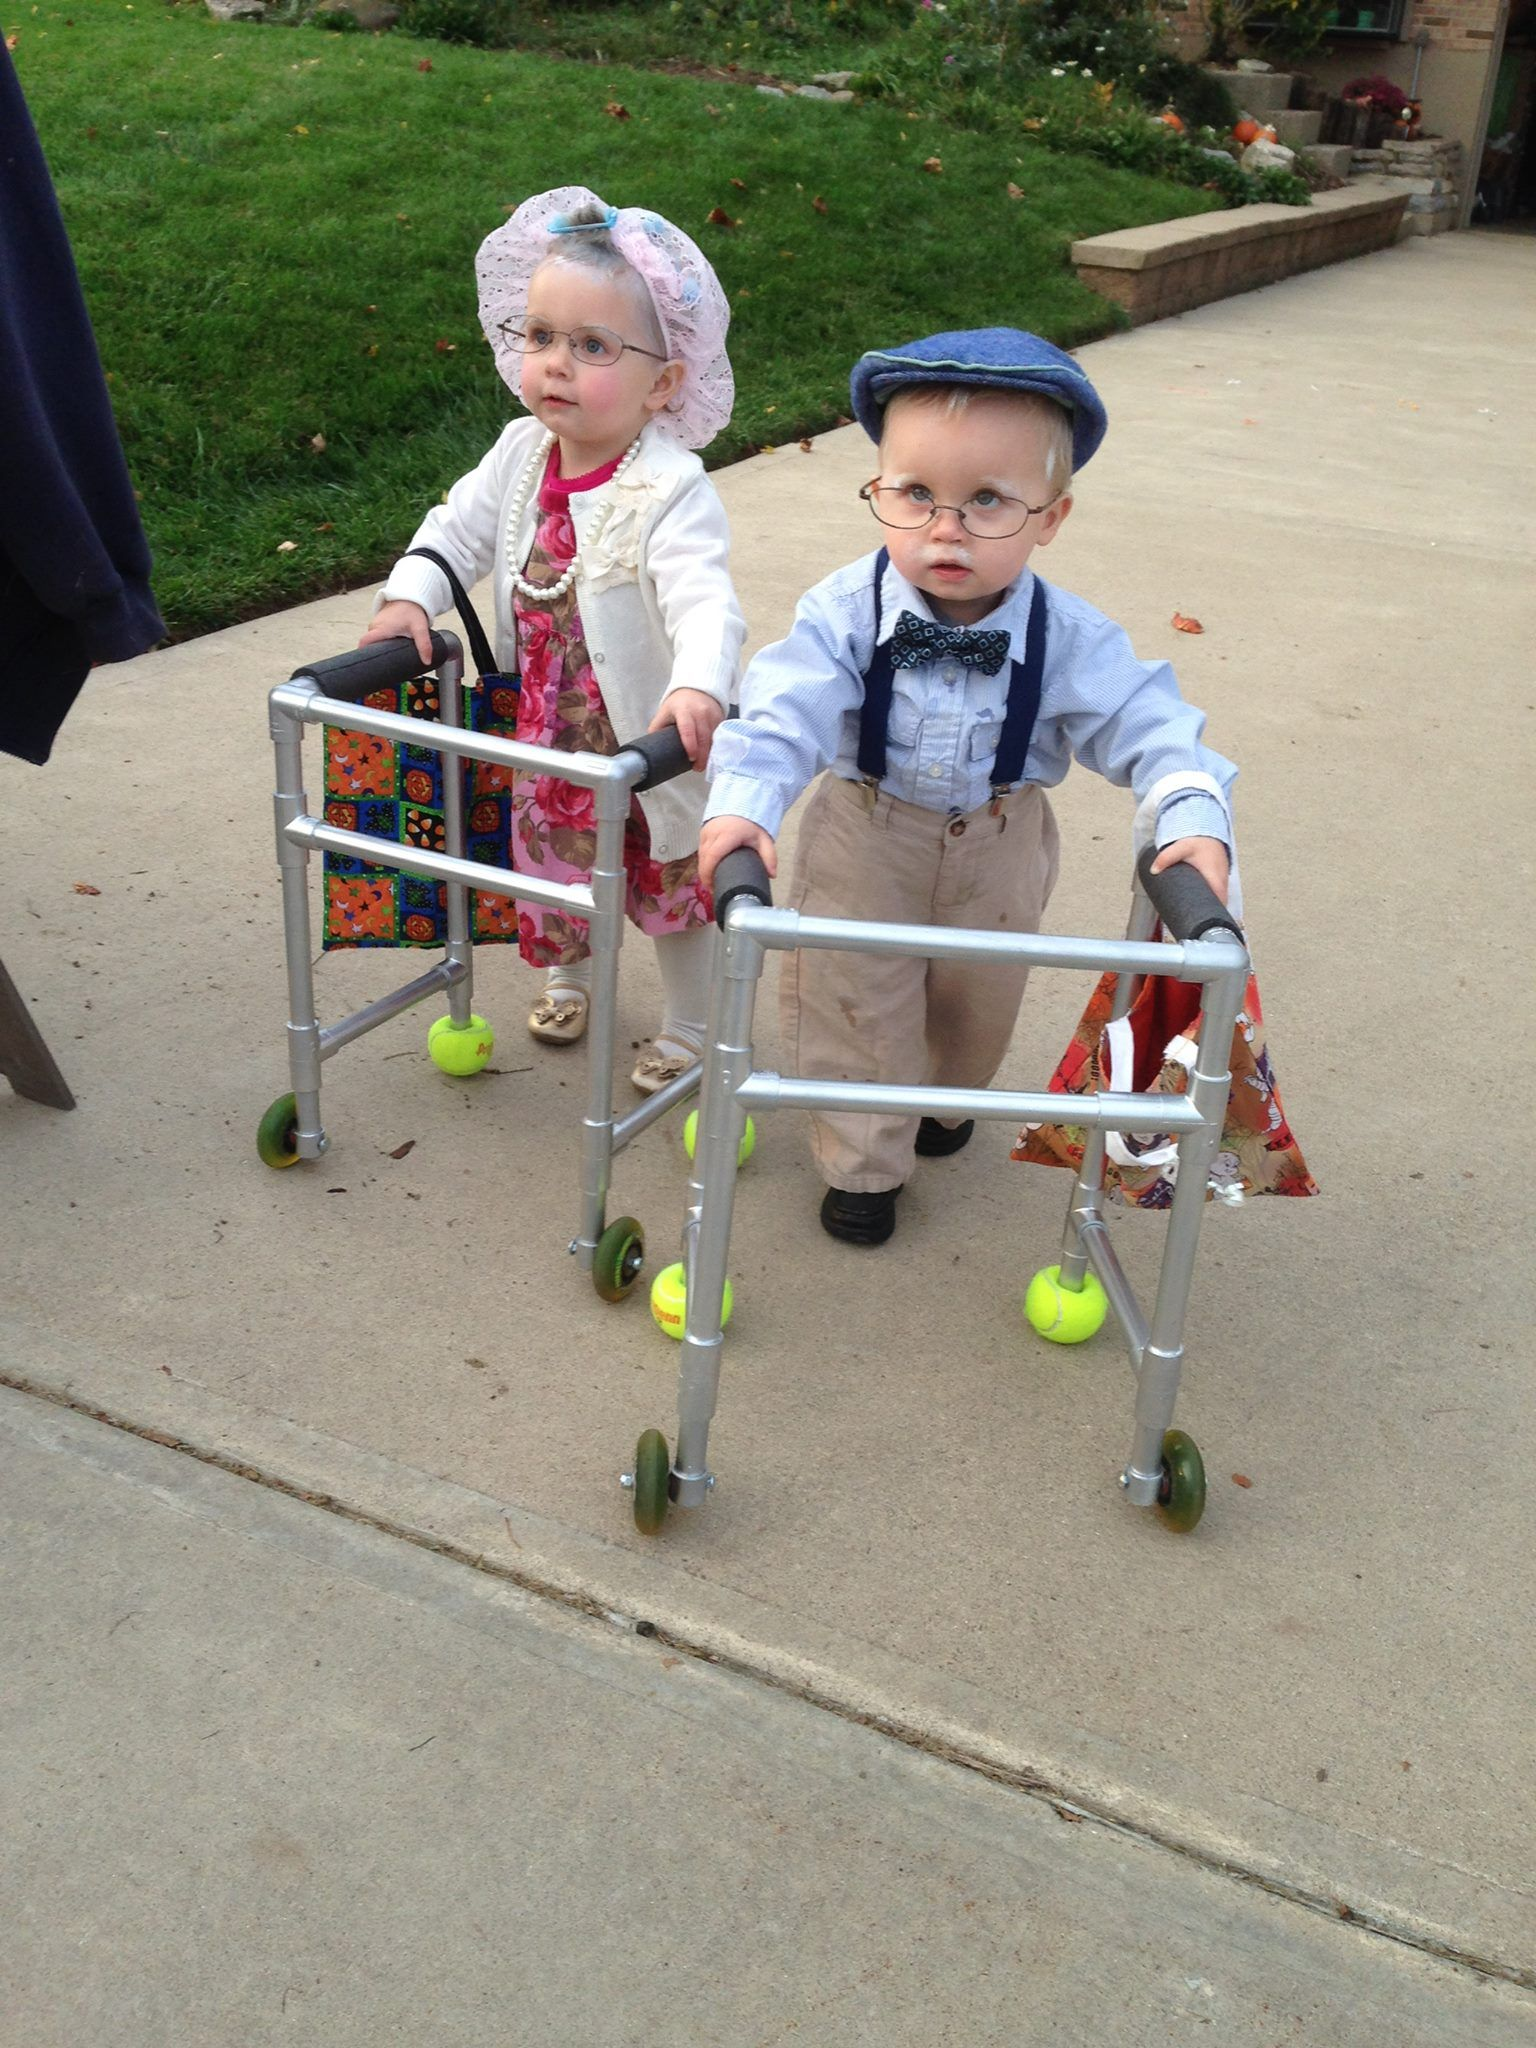 Great Costumes From Halloween 2014 | Halloween 2014 and Costumes